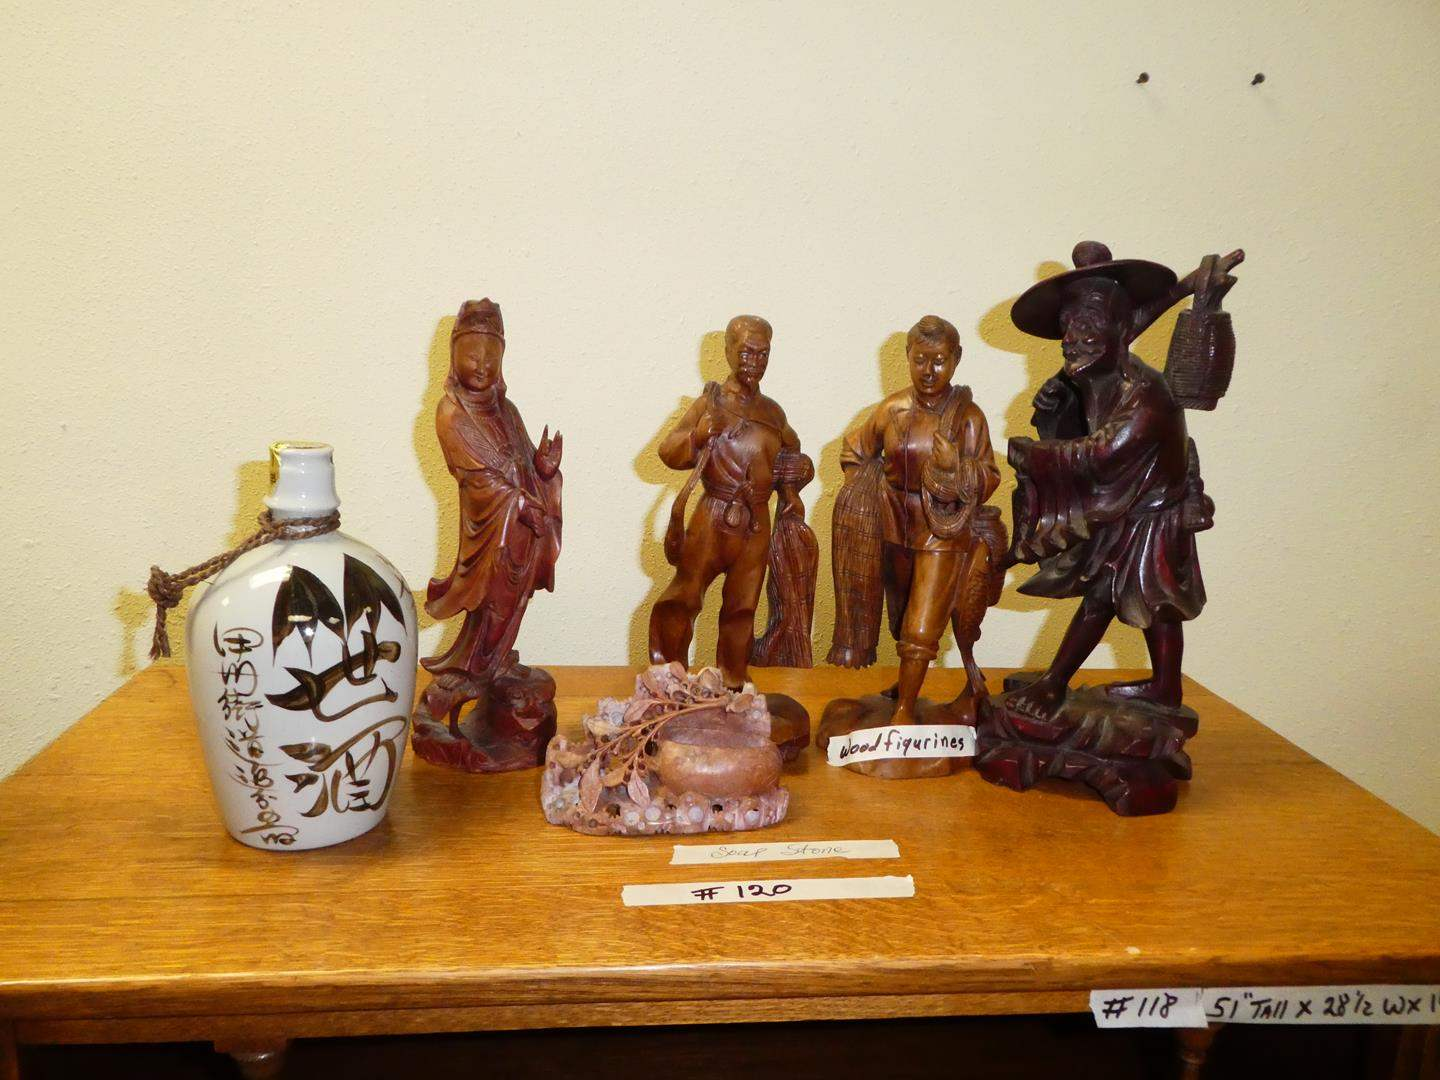 Lot # 120 - Vintage Carved Wood Asian Figures & Soap Stone Carving  (main image)